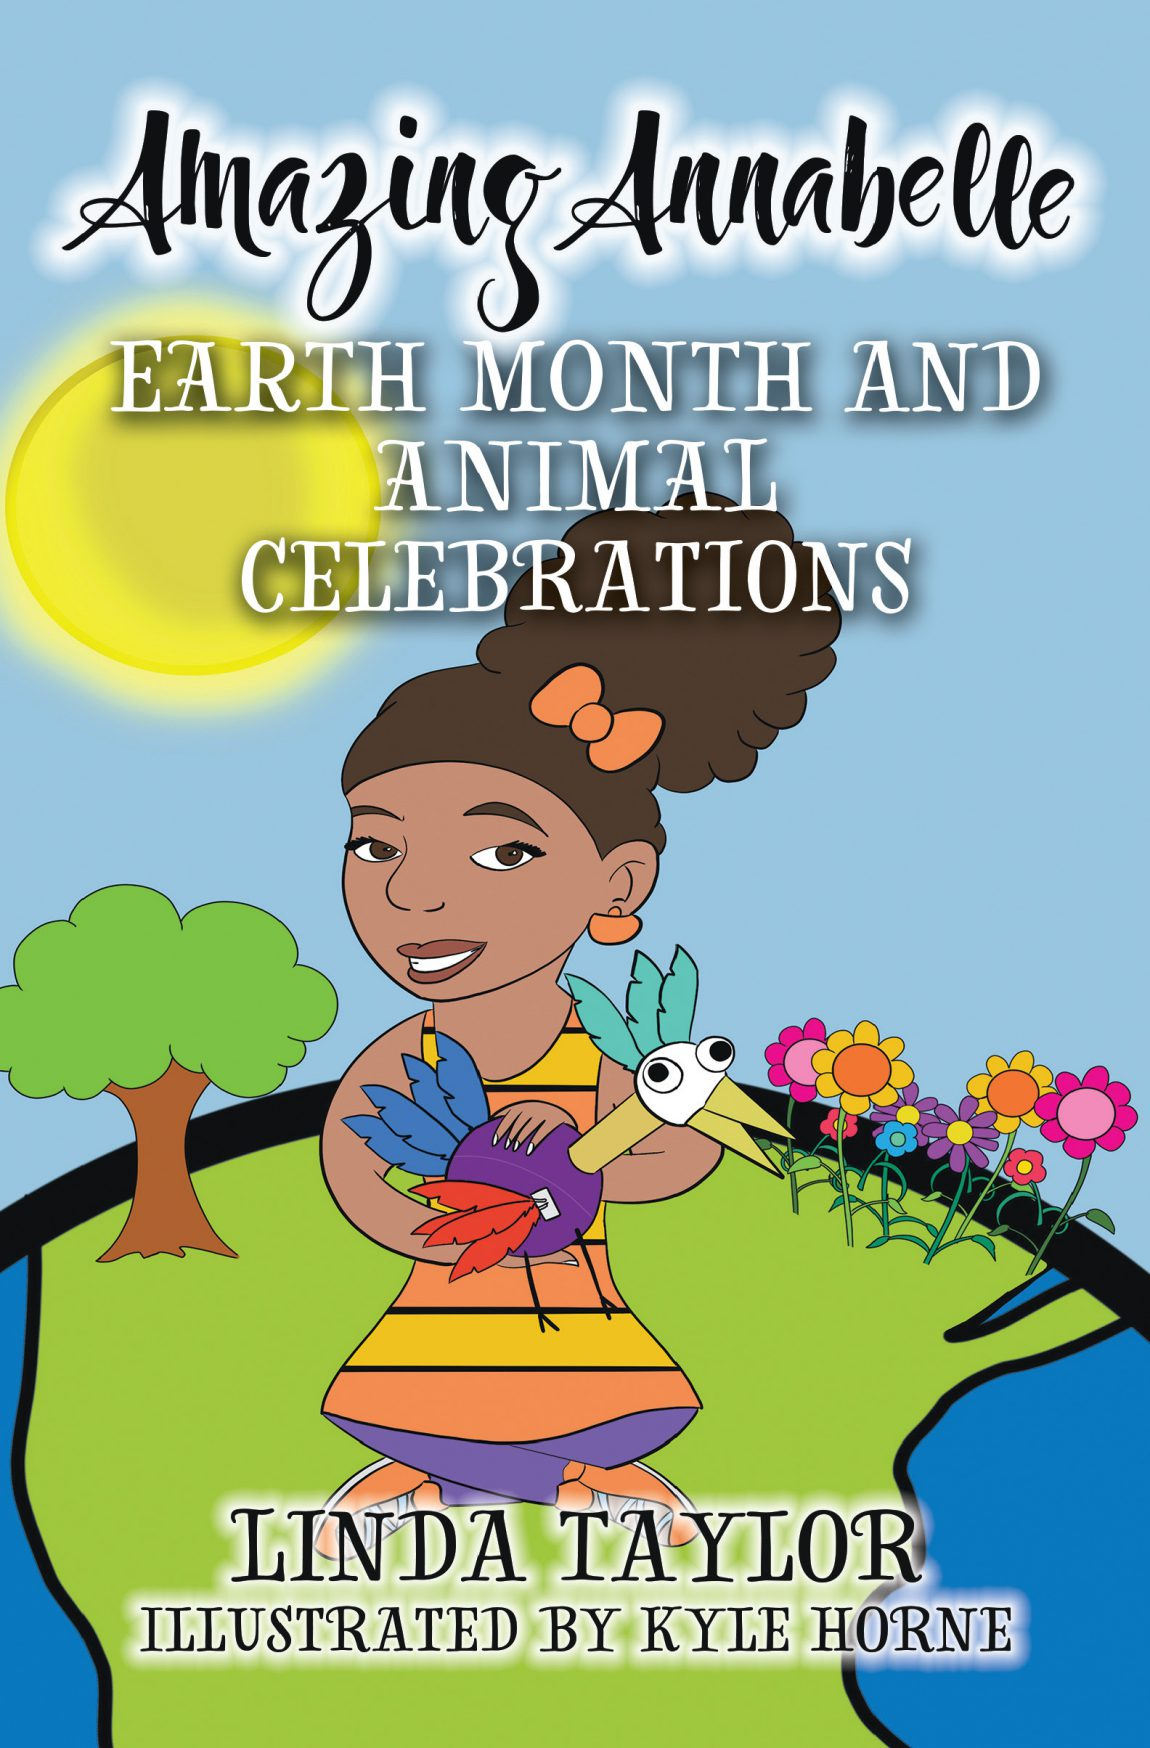 Earth-Month-and-Animal-Celebrations.jpg